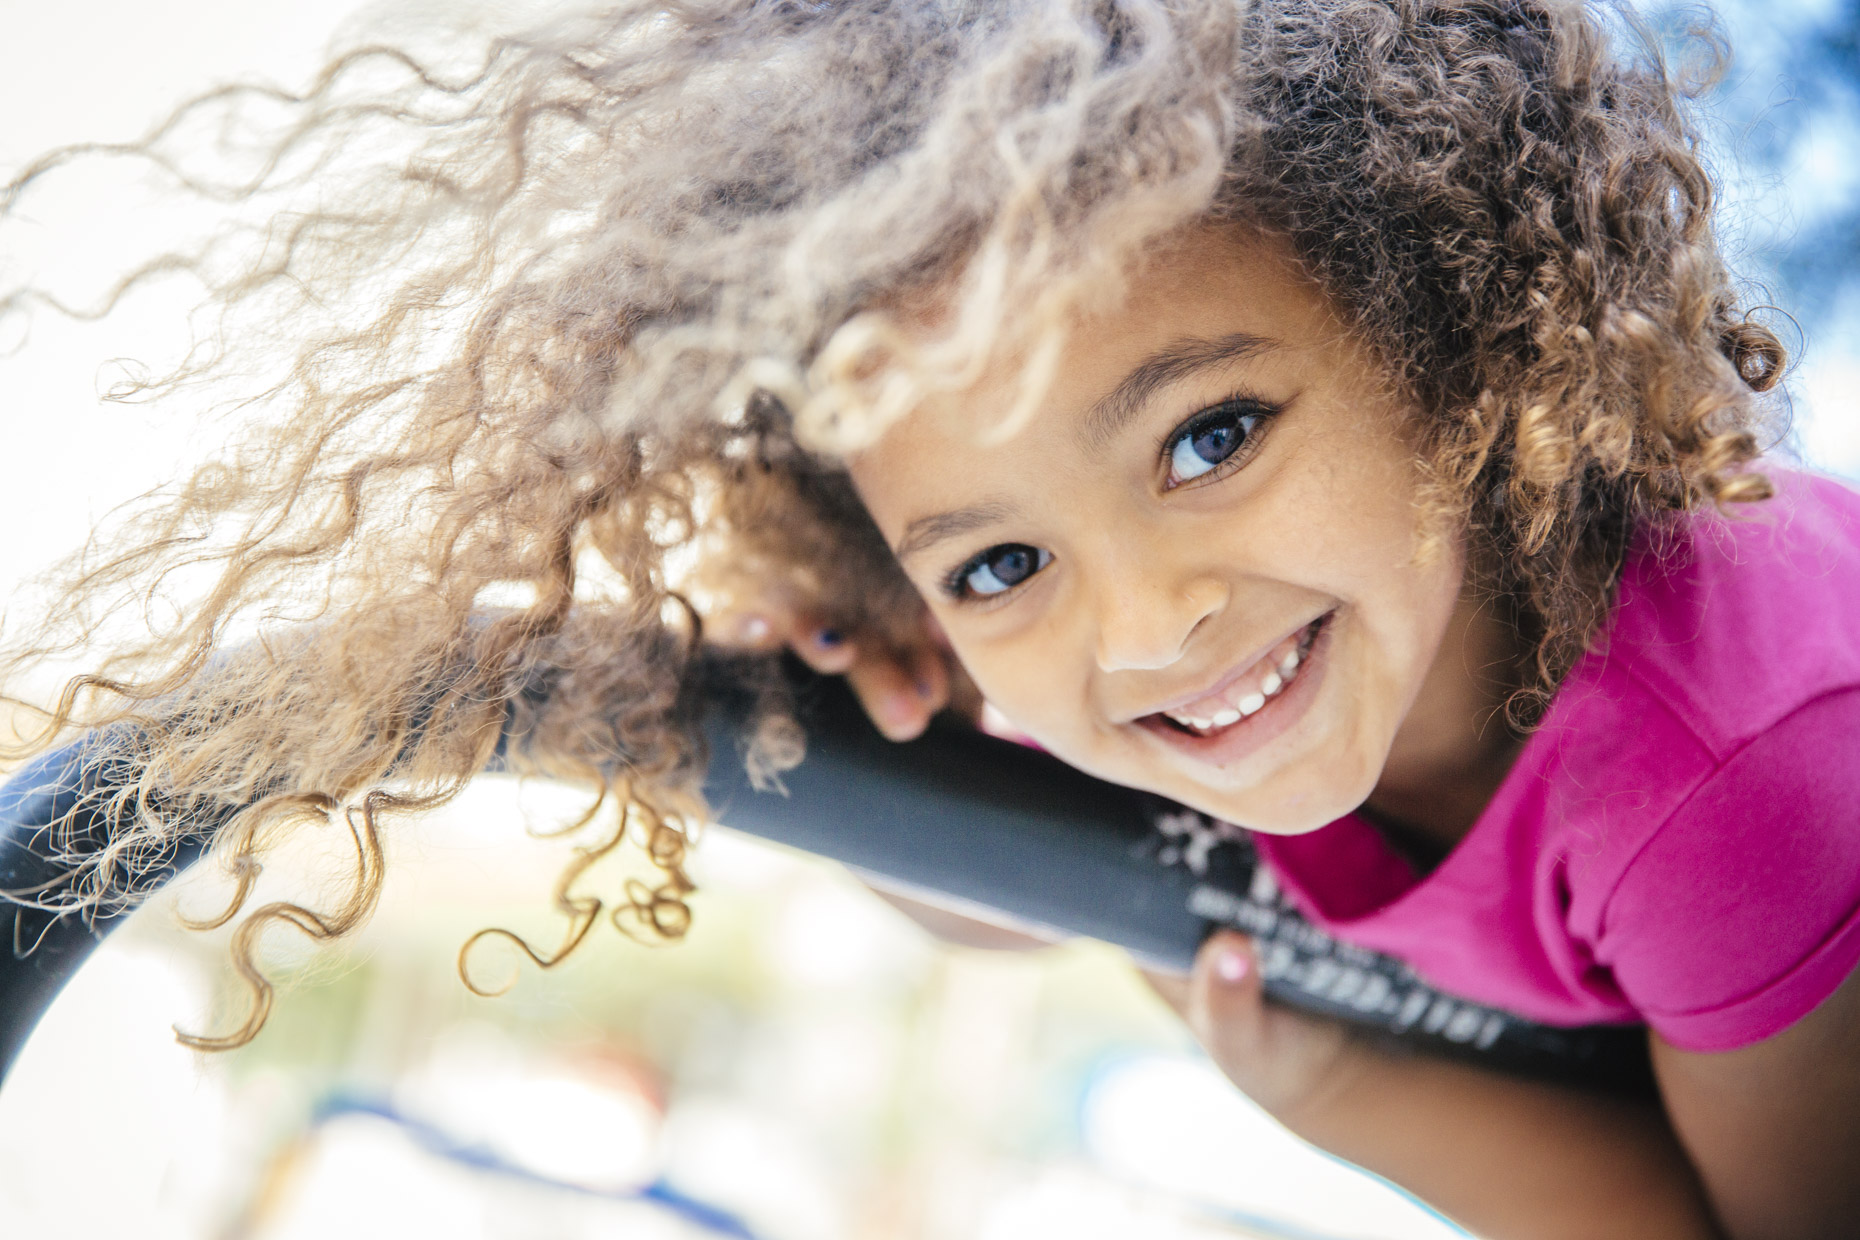 Smiling girl with curly hair hanging upside down